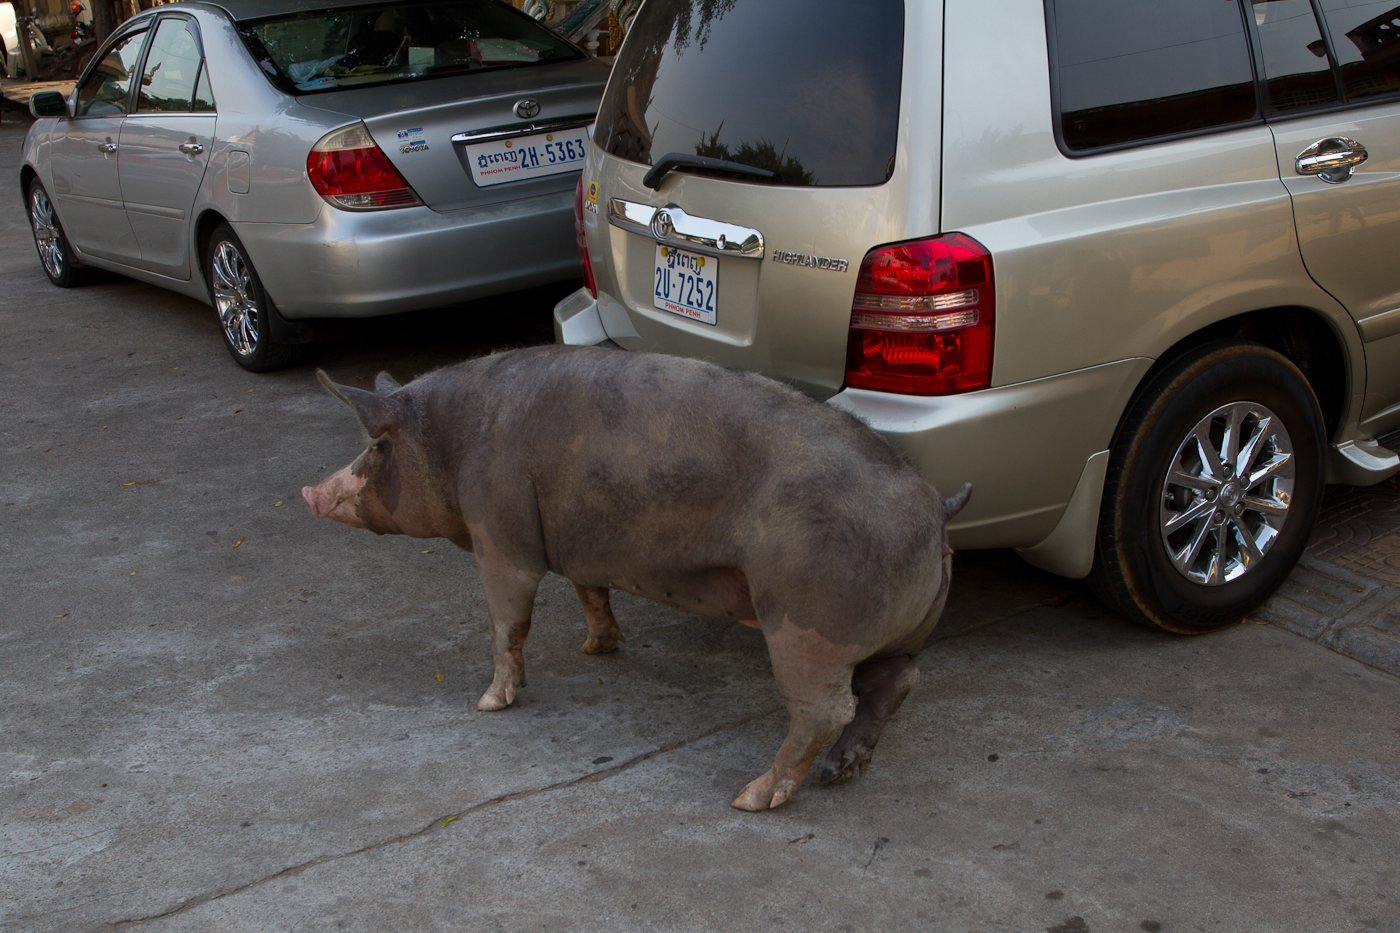 This picture makes you ask: A) Why is the pig in the city? B) How does the owner feel about having the pig use the car as a back scratcher. We will never know.